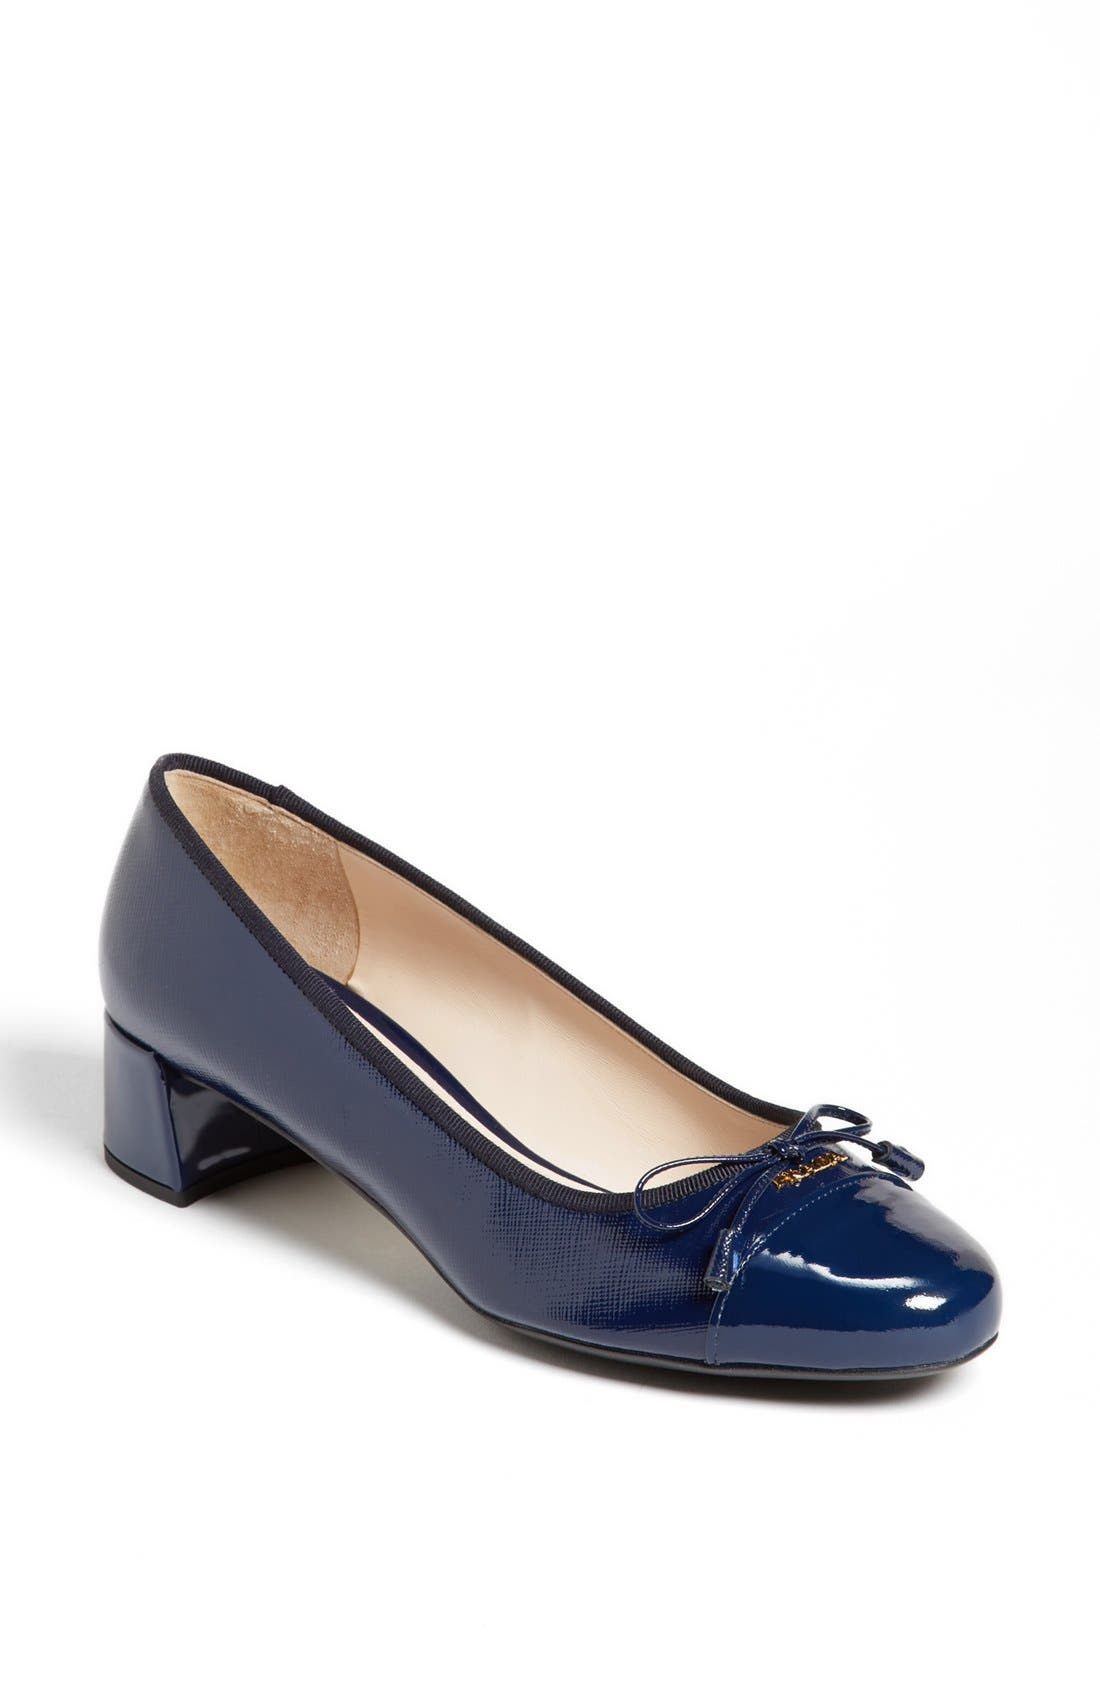 Alternate Image 1 Selected - Prada Round Cap Toe Pump